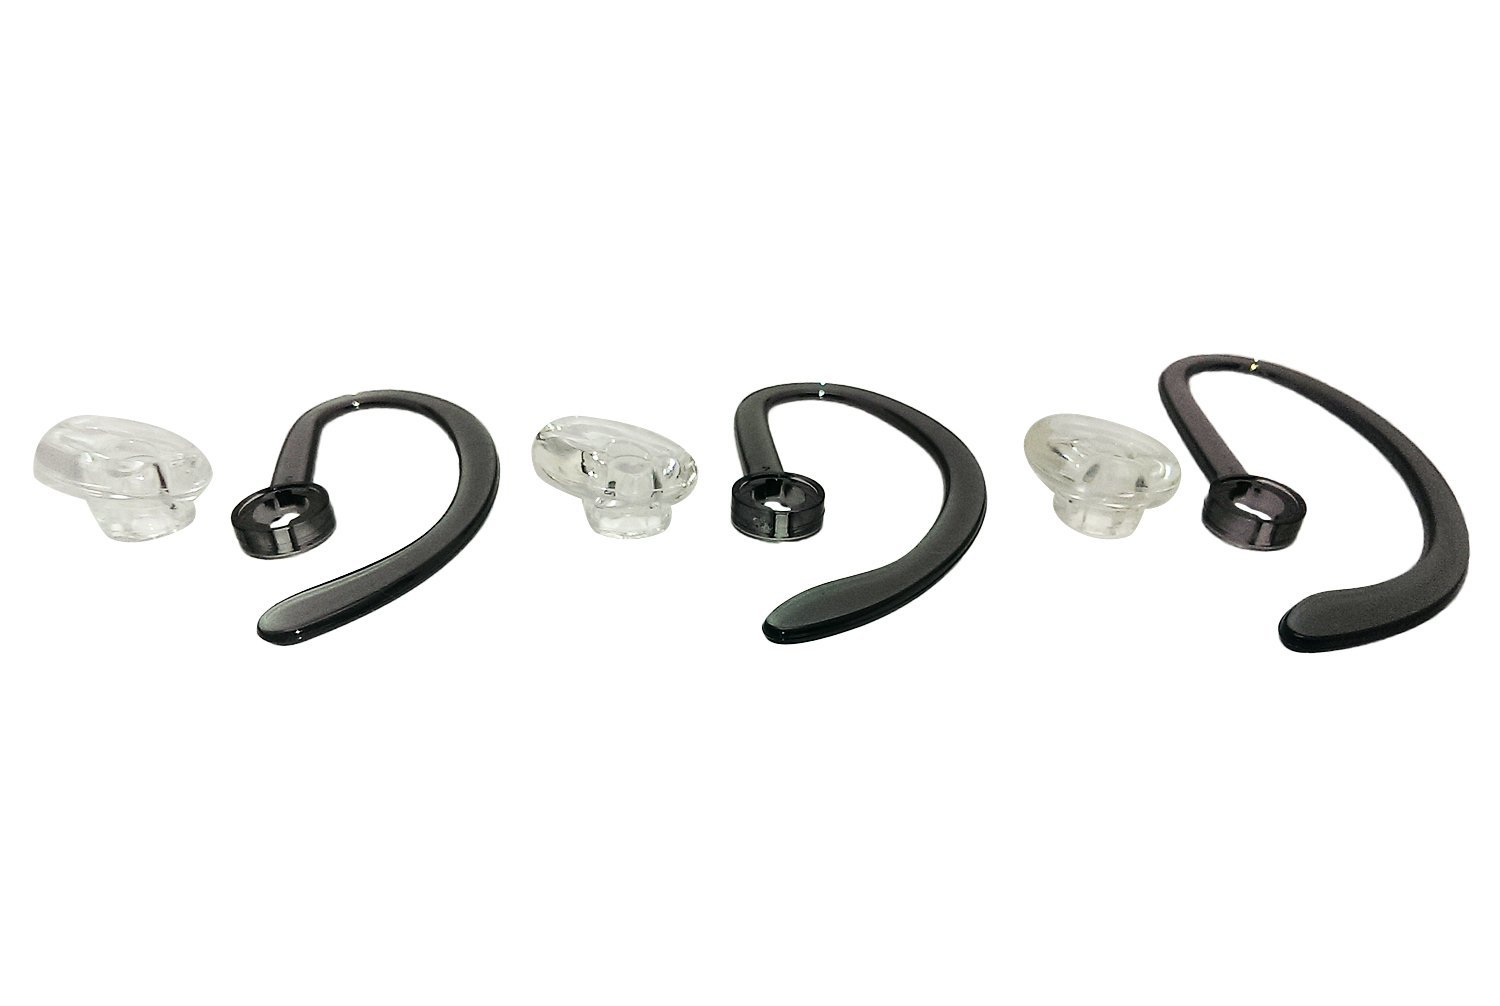 Plantronics Spare Fit Kit for CS540 - Includes: 3 Earloop & 3 Eartips